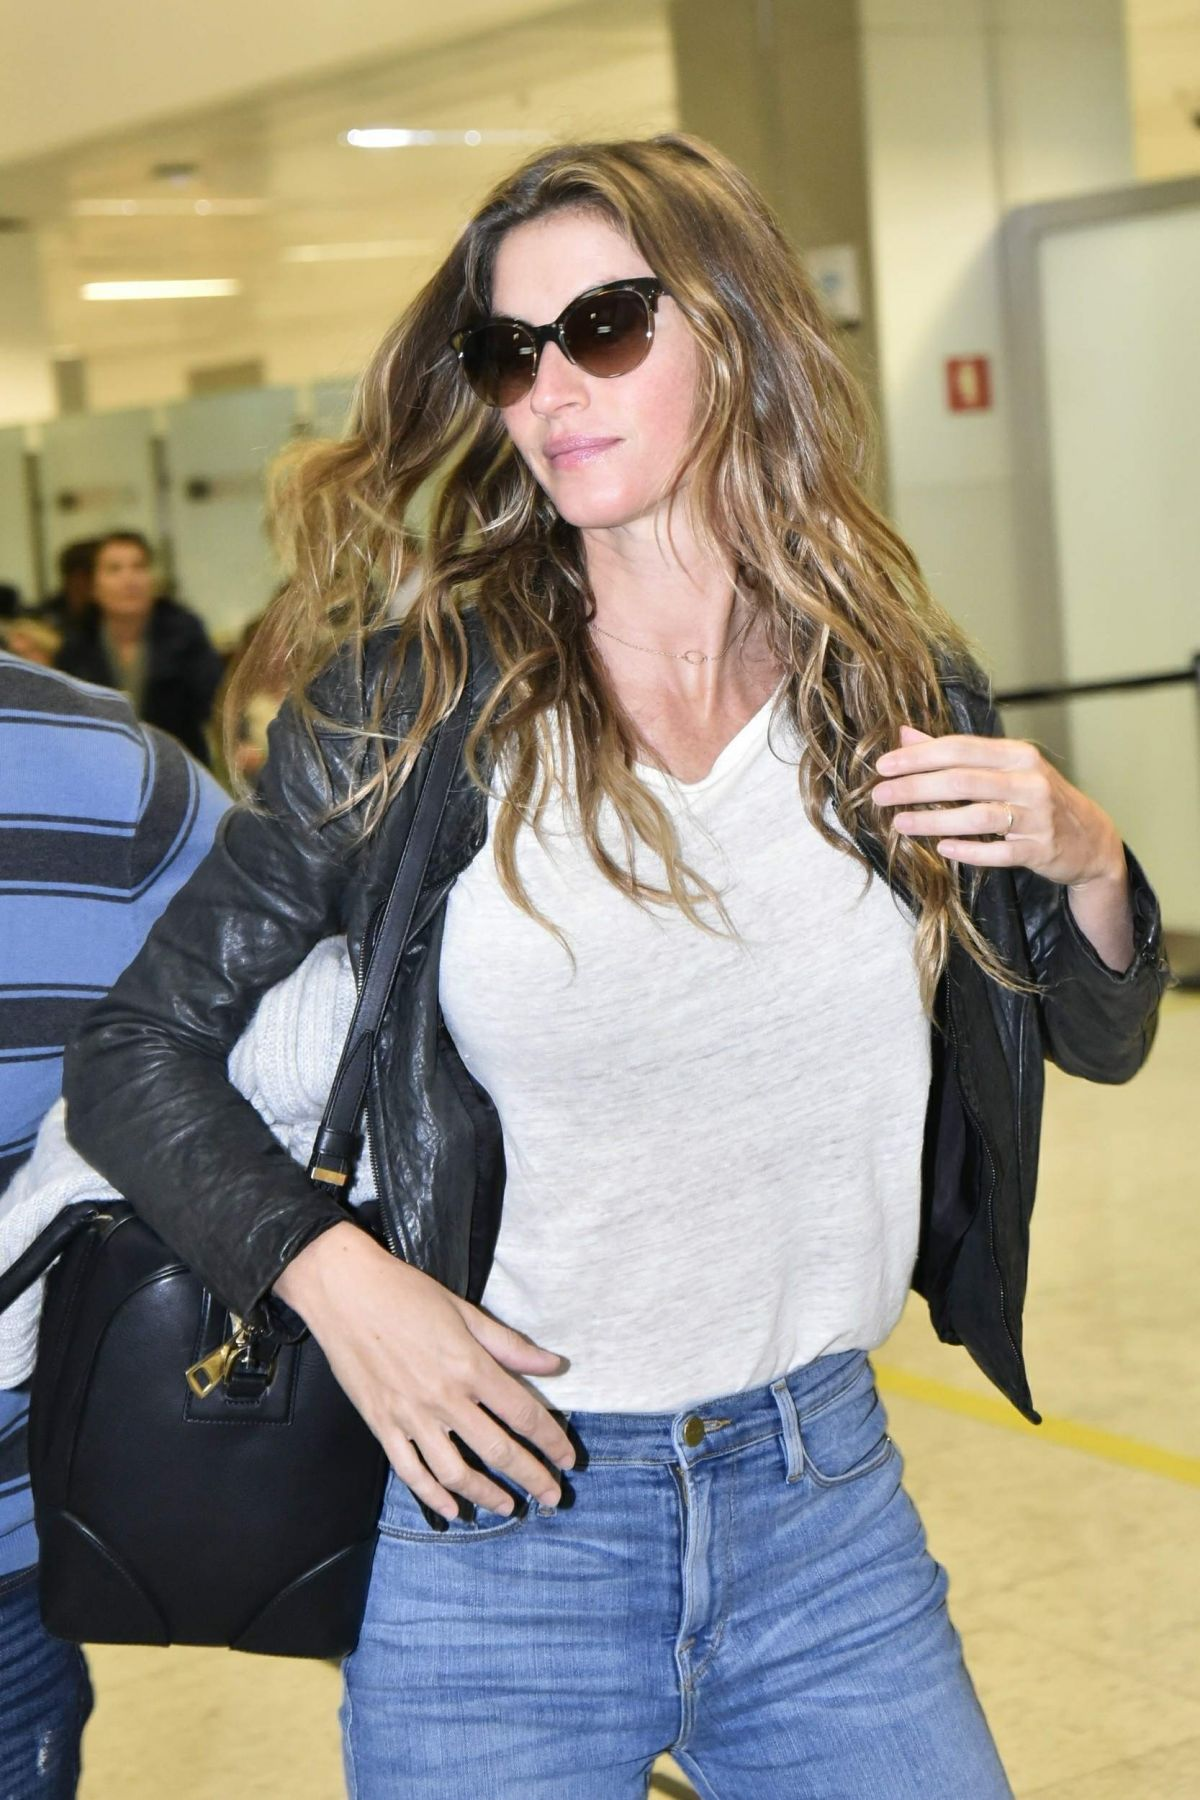 GISELE BUNDCHEN at International Airport in Sao Paulo 08/15/2017